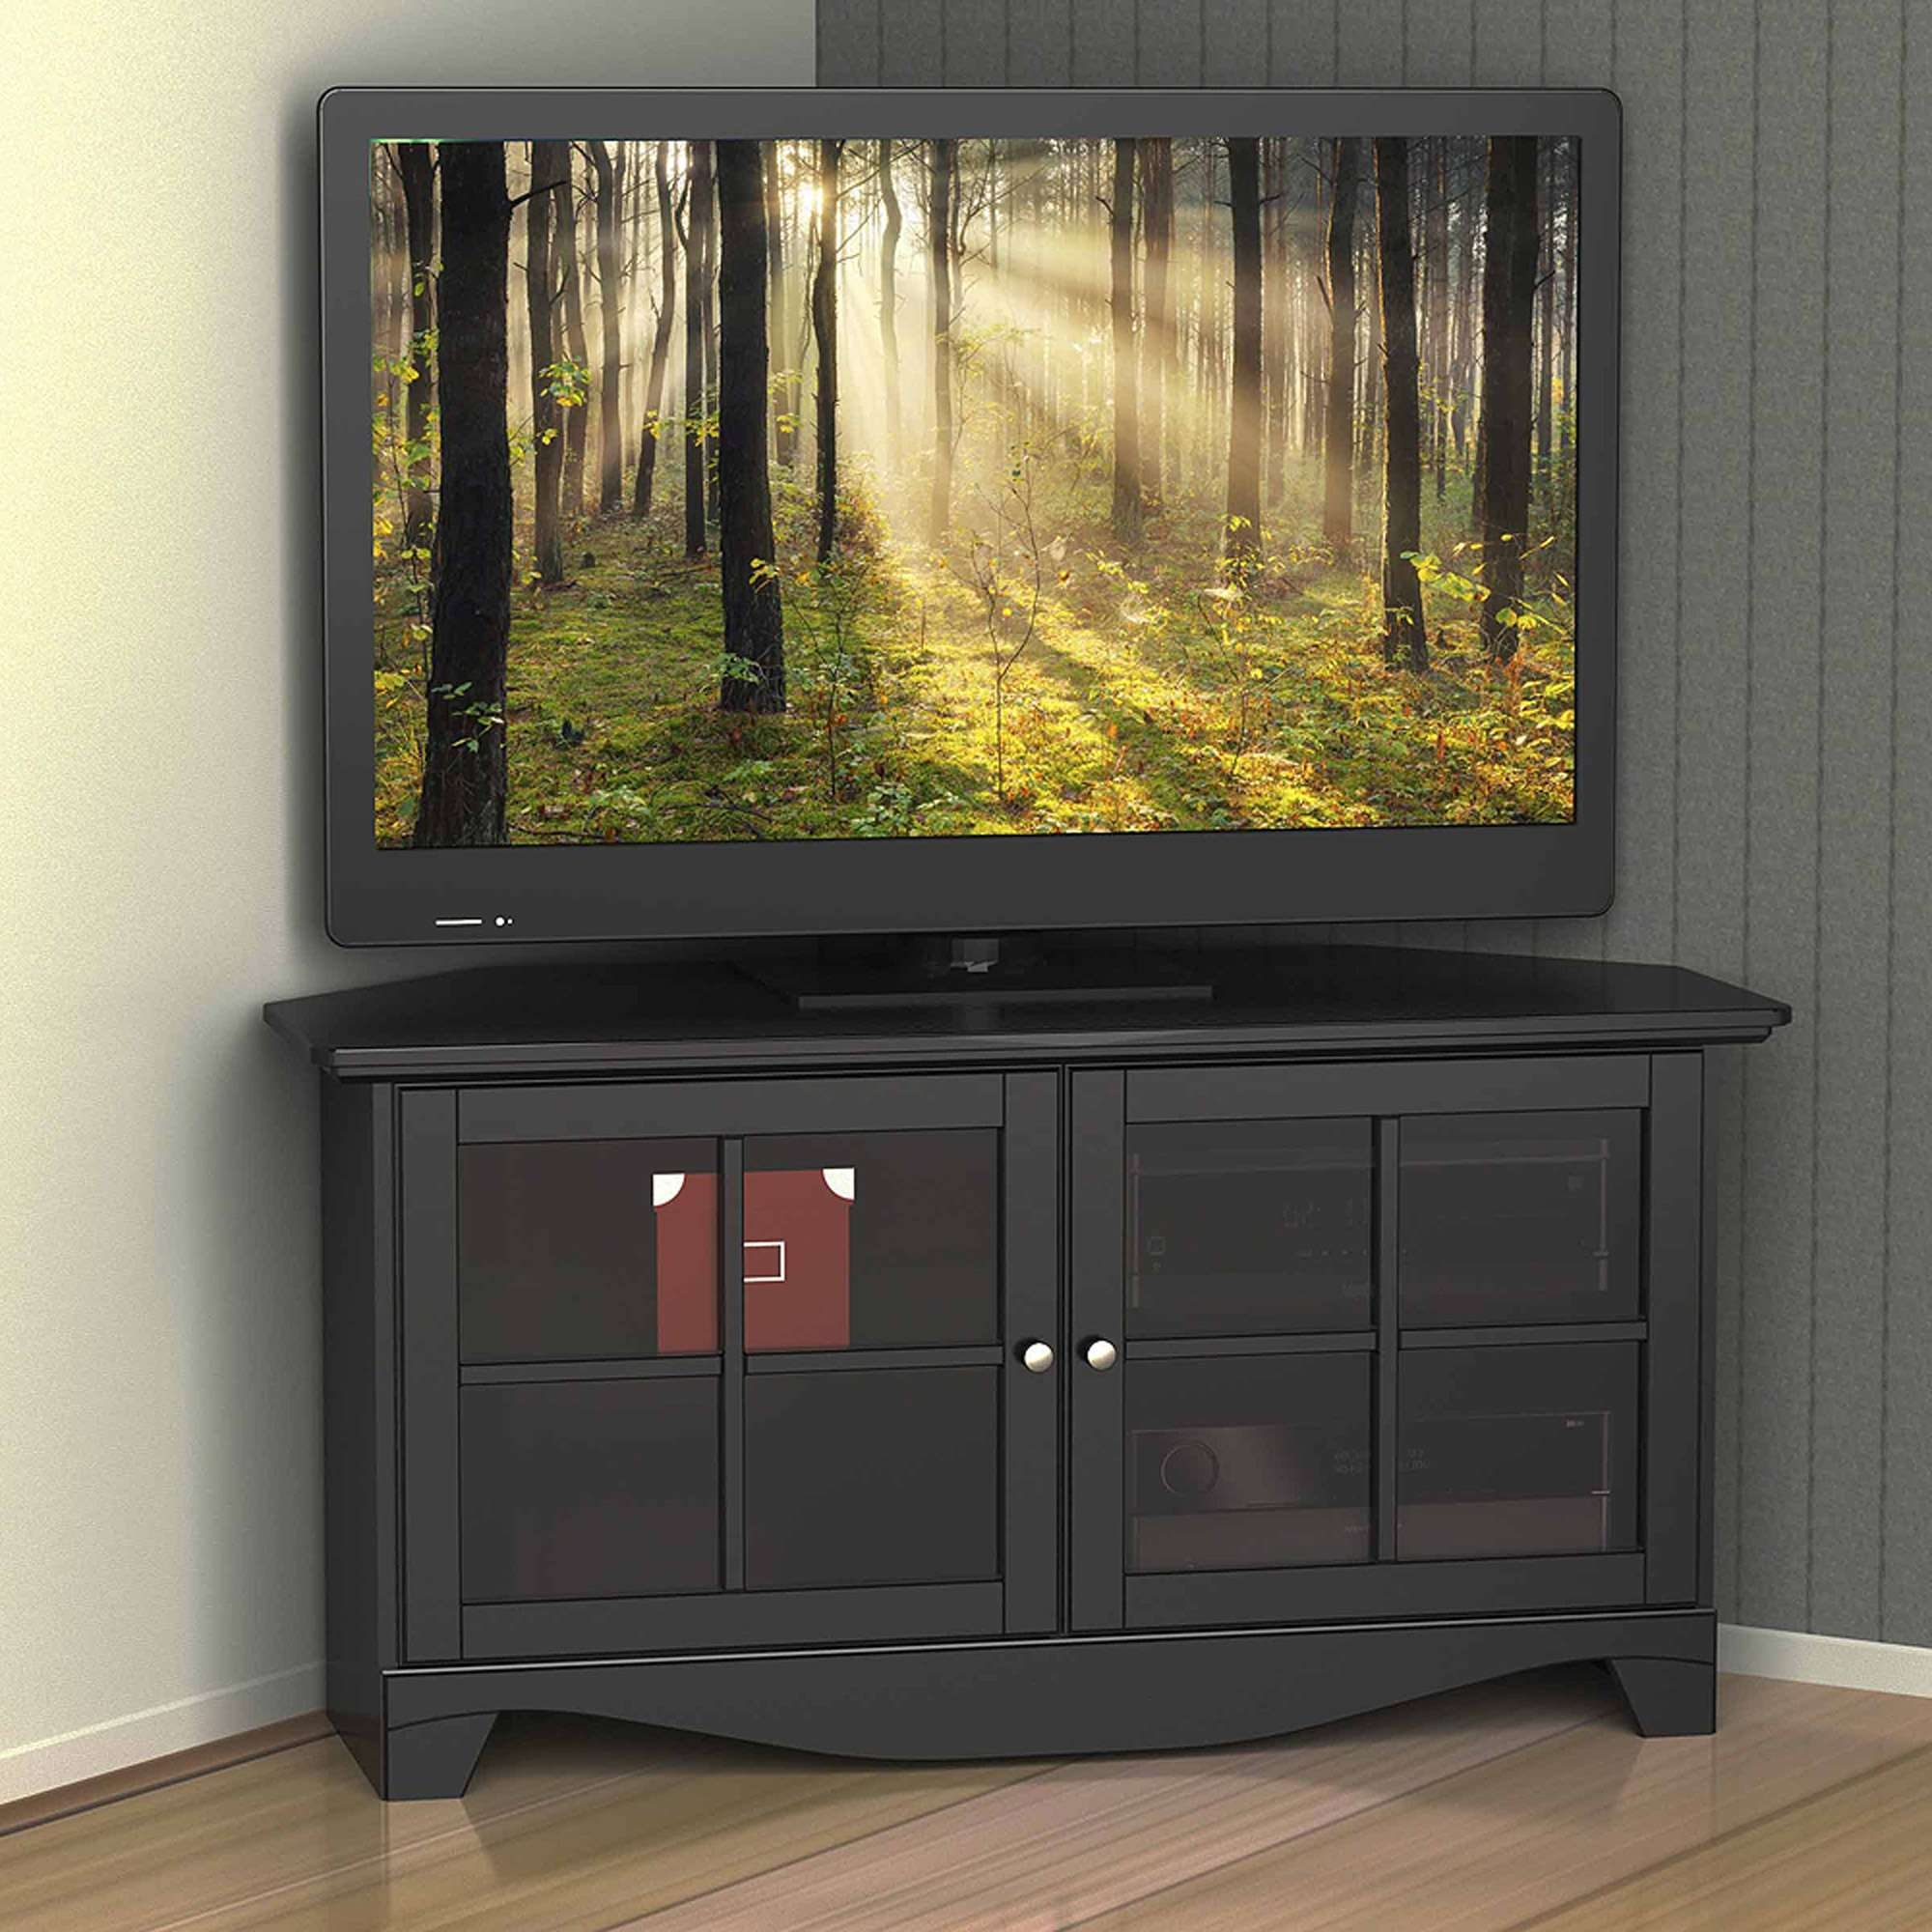 Nexera Pinnacle Black 2 Door Corner Tv Stand For Tvs Up To 49 Regarding Black Corner Tv Cabinets With Glass Doors (View 10 of 20)